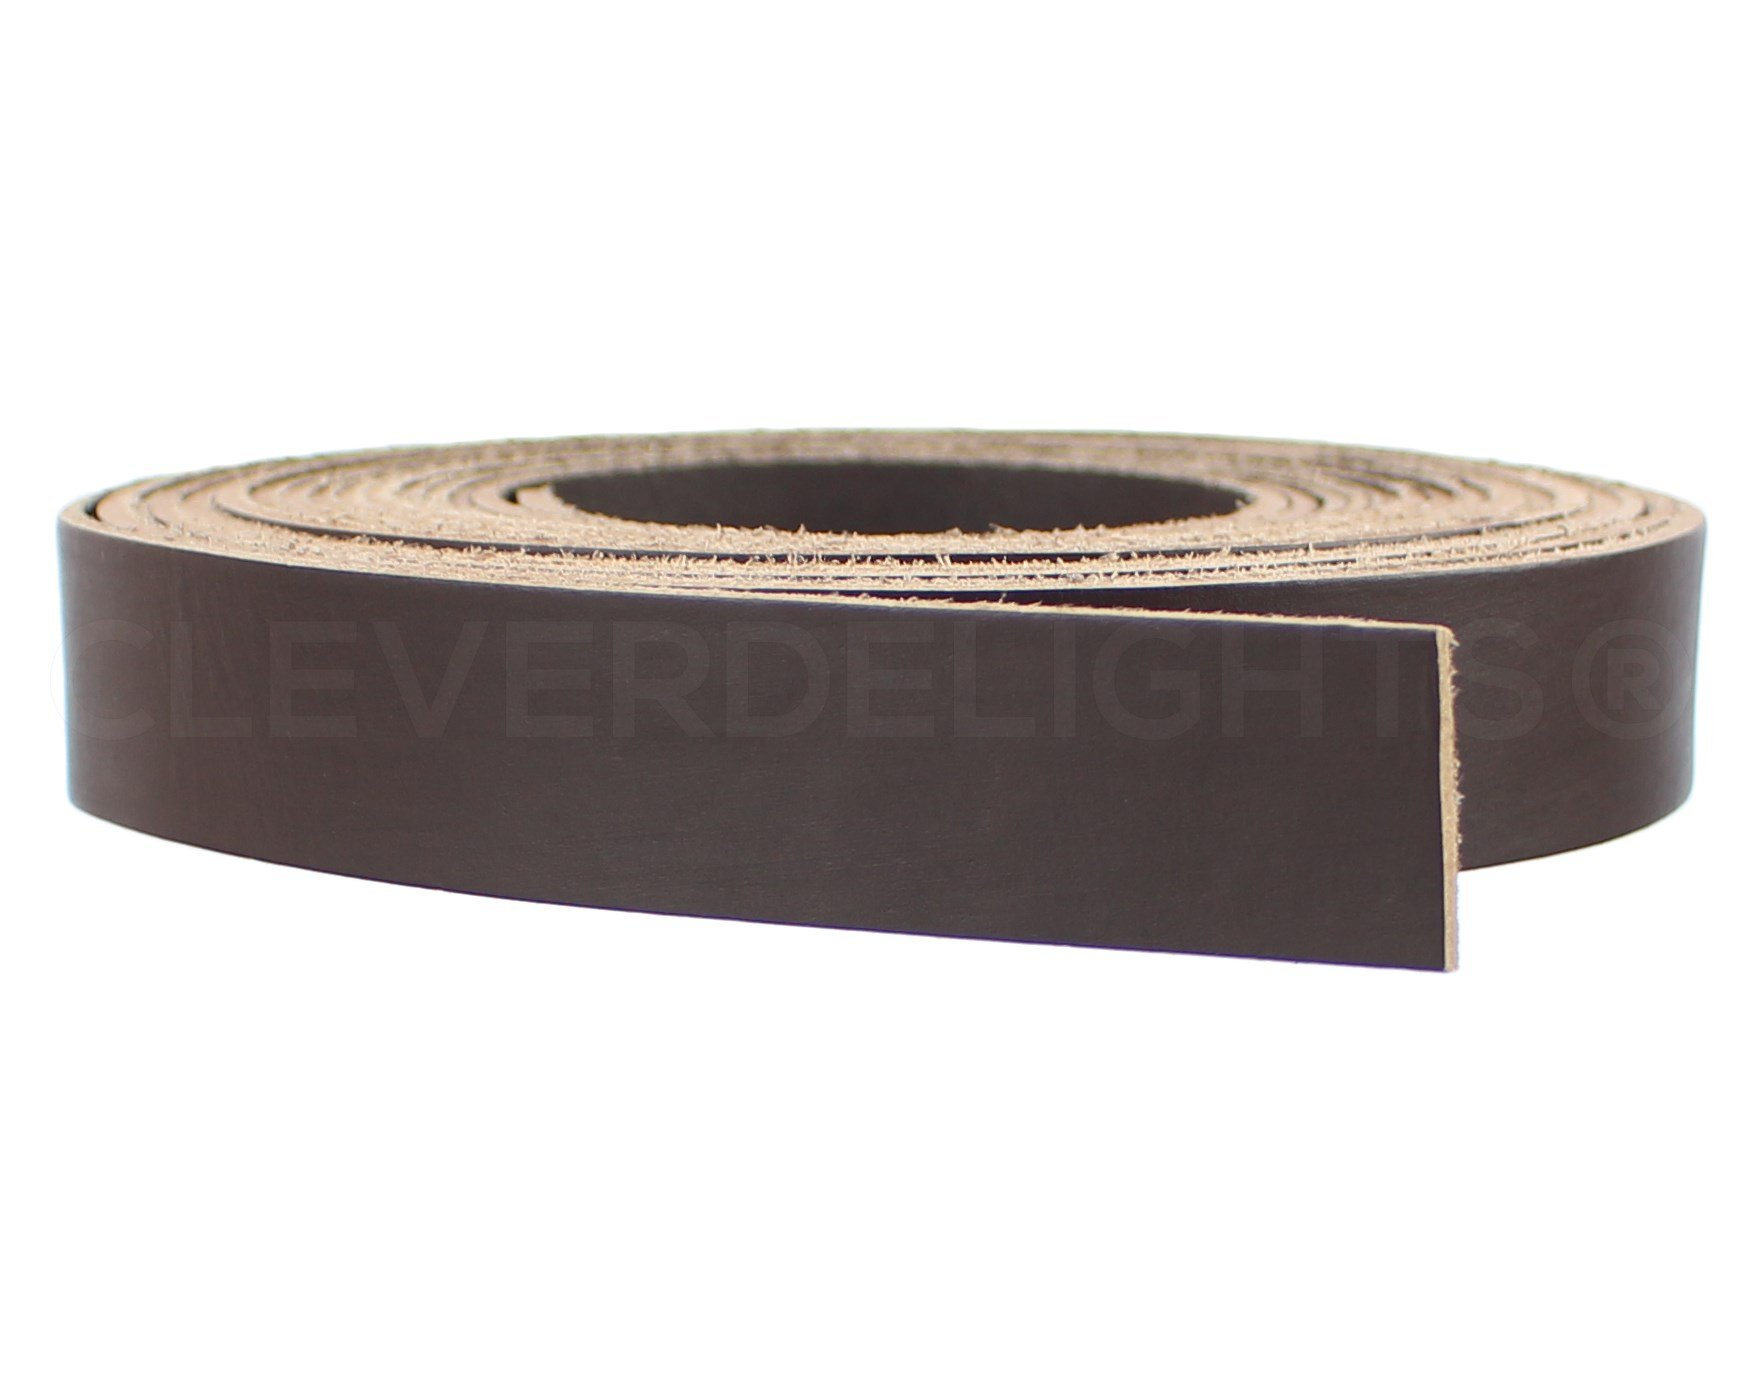 CleverDelights Premium Cowhide Leather Strap - Dark Brown - 1'' Wide - 15 Feet Long - 5oz Genuine Leather - Jewelry Craft Supply